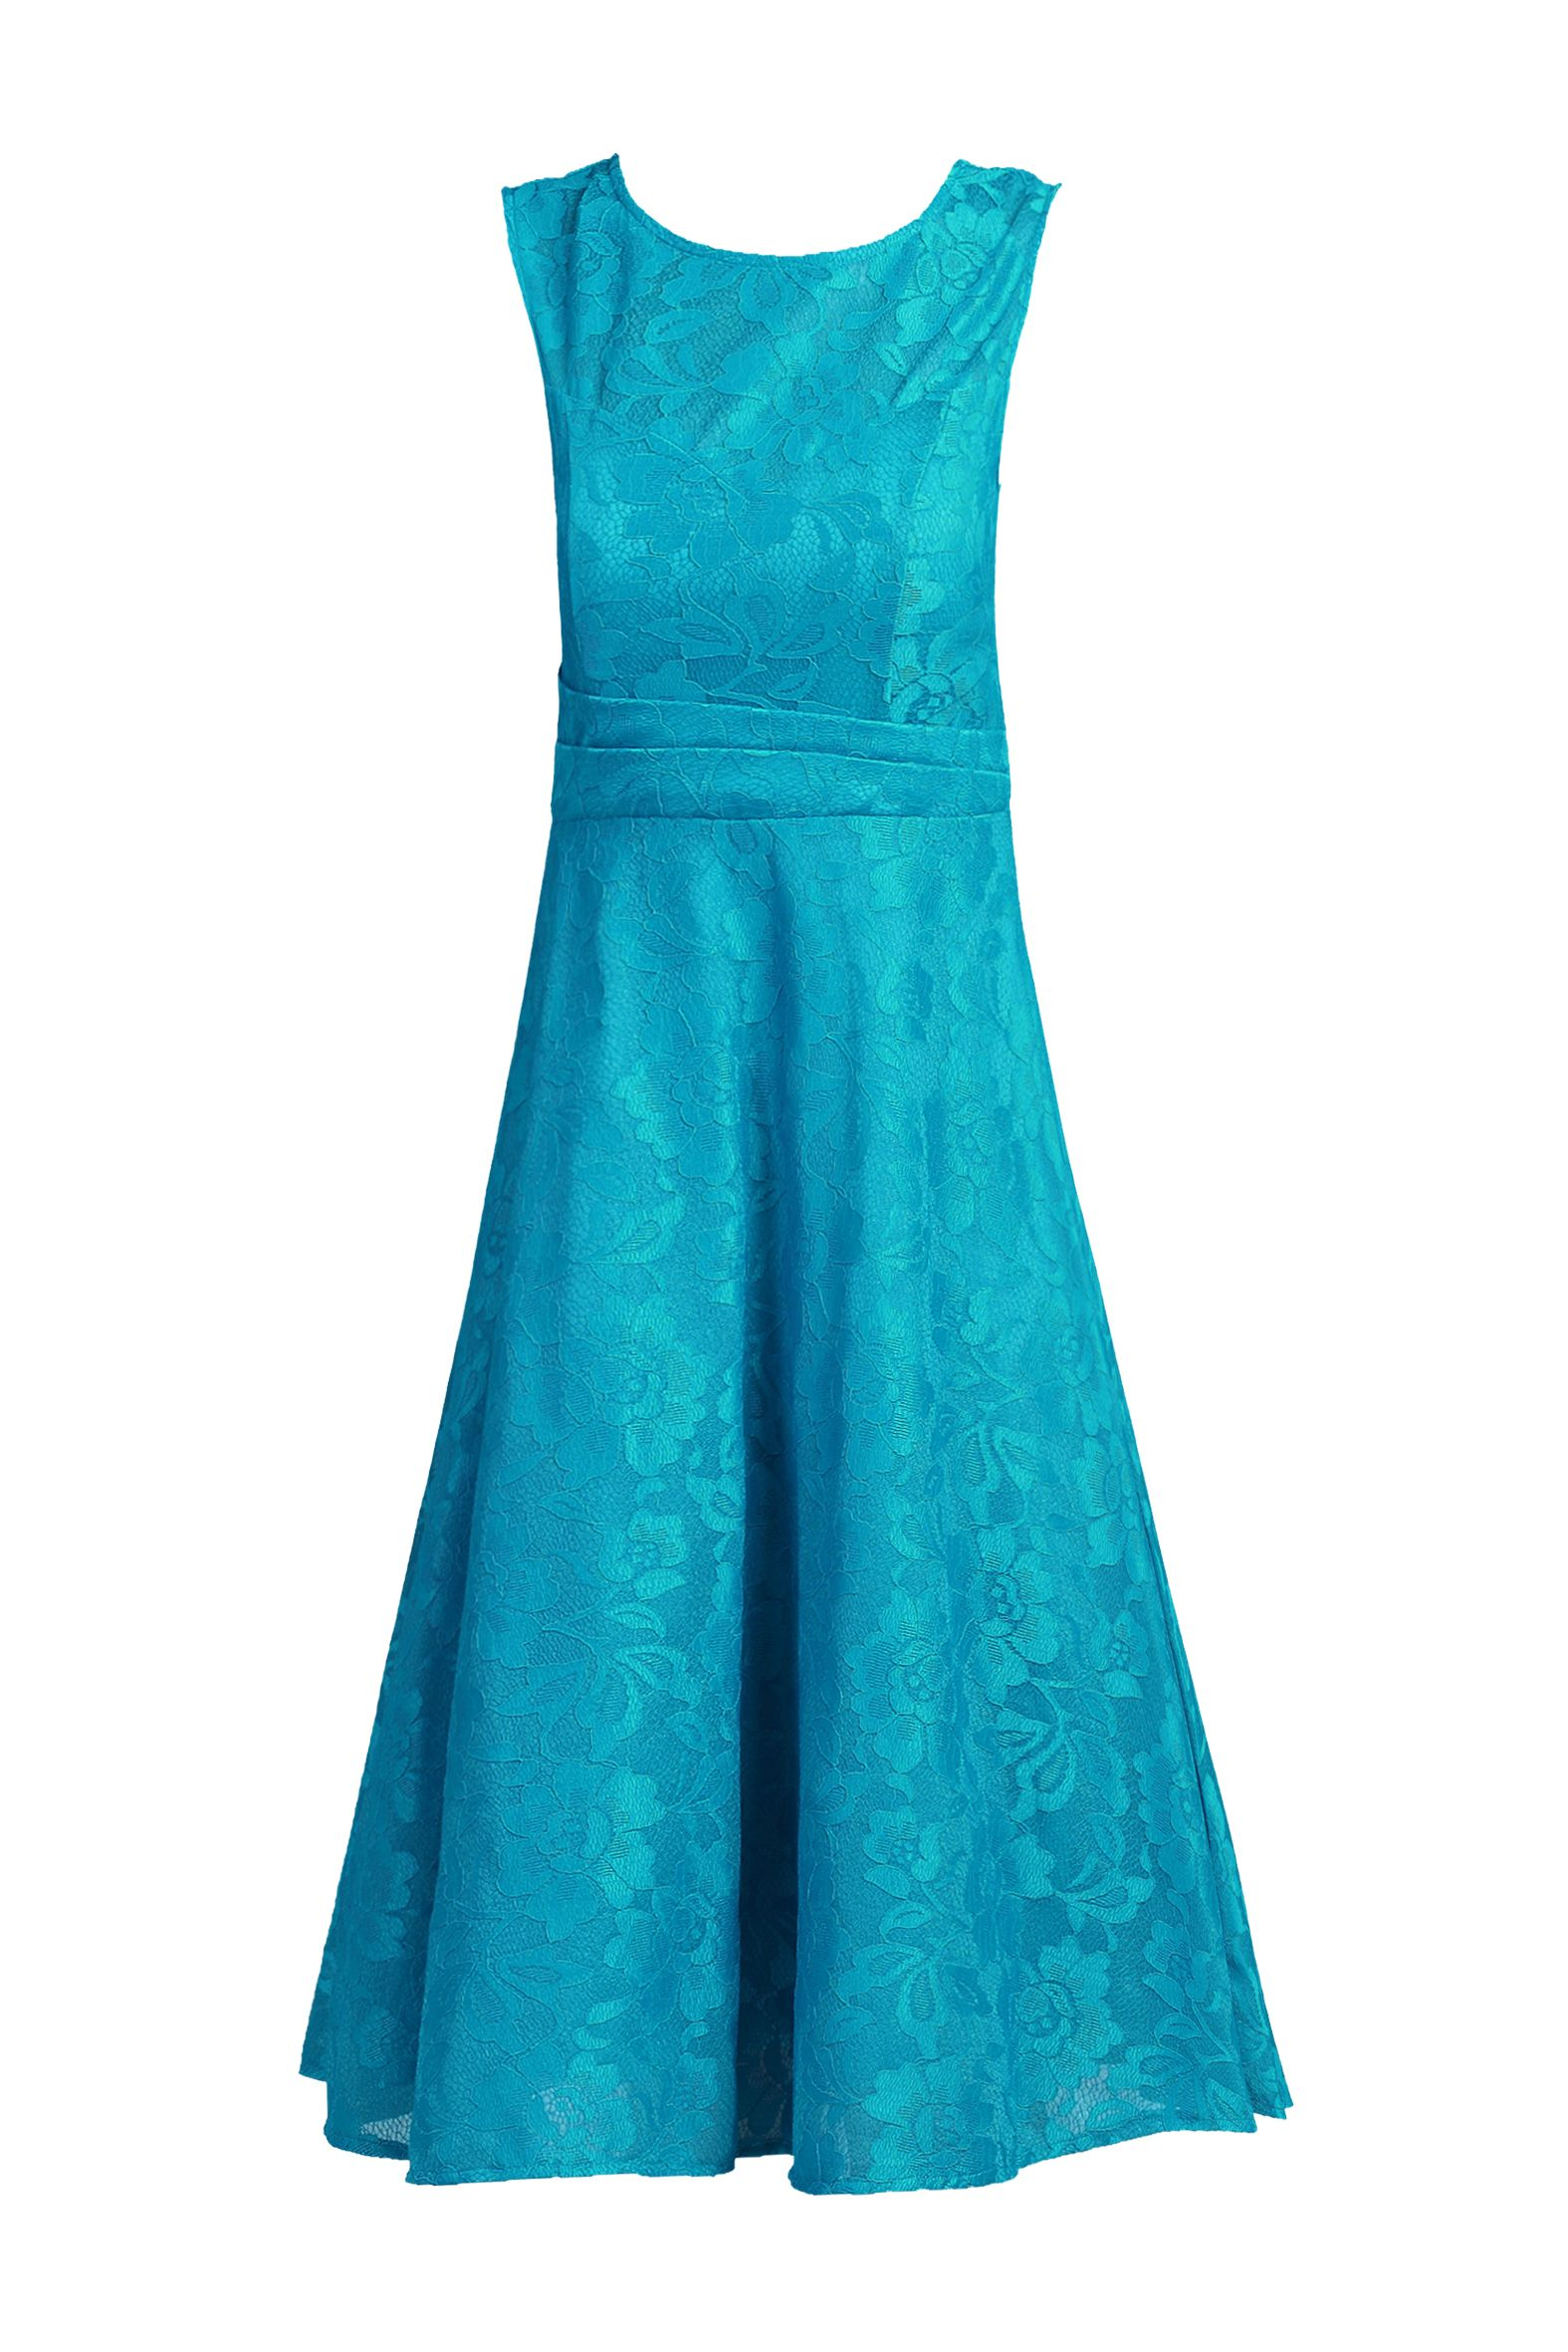 Jolie Moi Lace Bonded Fit and Flare Dress, Teal